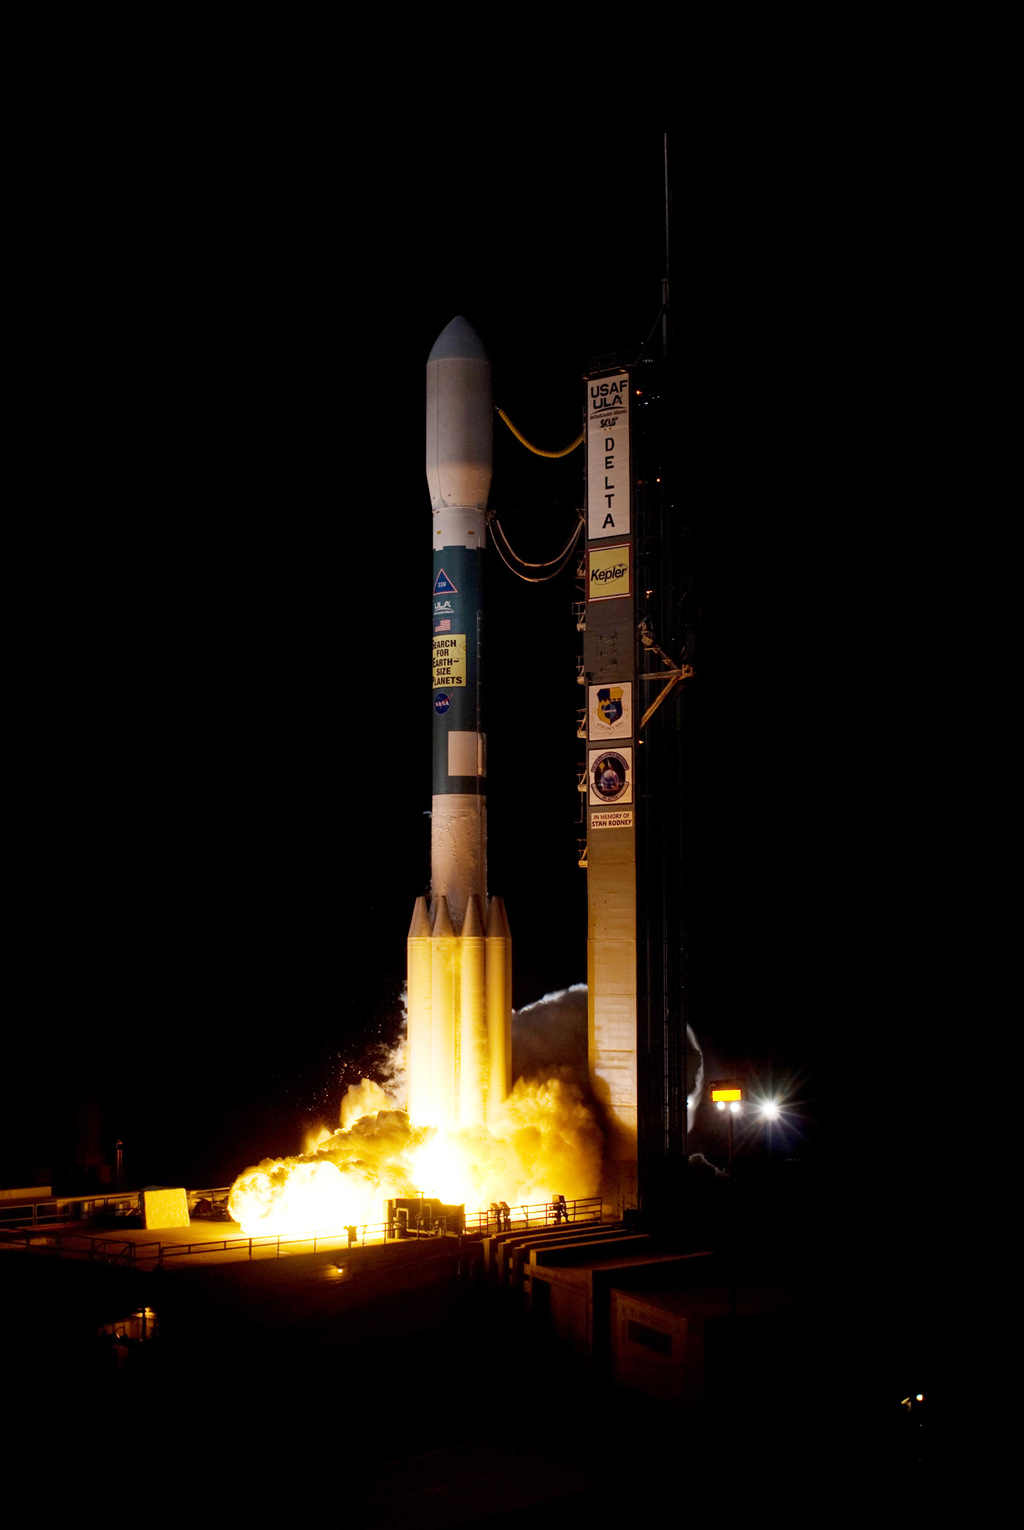 On March 6, 2009, NASA's Kepler Space Telescope rocketed into the night skies above Cape Canaveral Air Force Station in Florida to find planets around other stars, called exoplanets, in search of potentially habitable worlds.